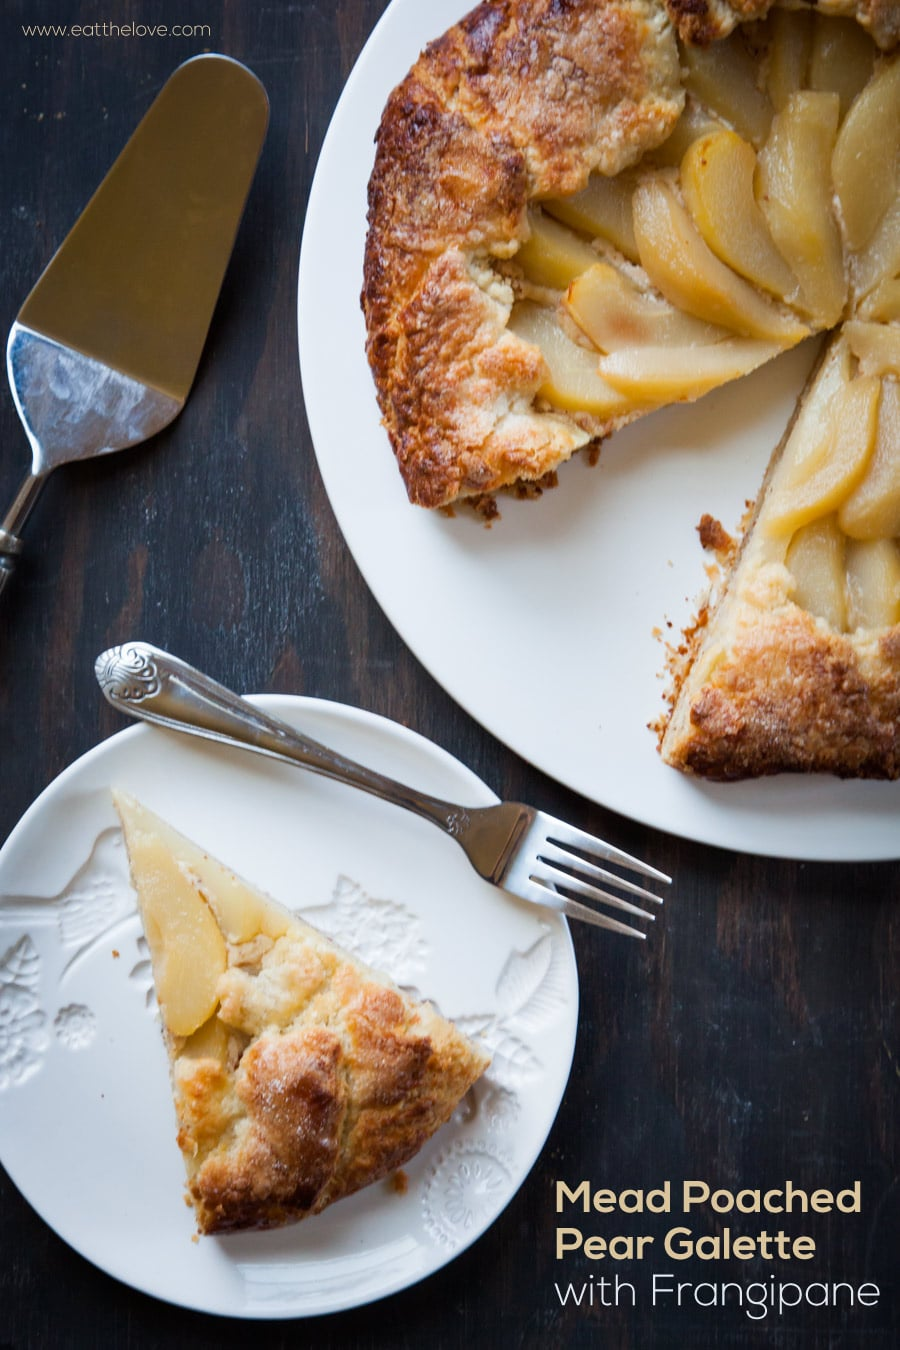 Mead Poached Pear Galette with Frangipane by Irvin Lin of Eat the Love